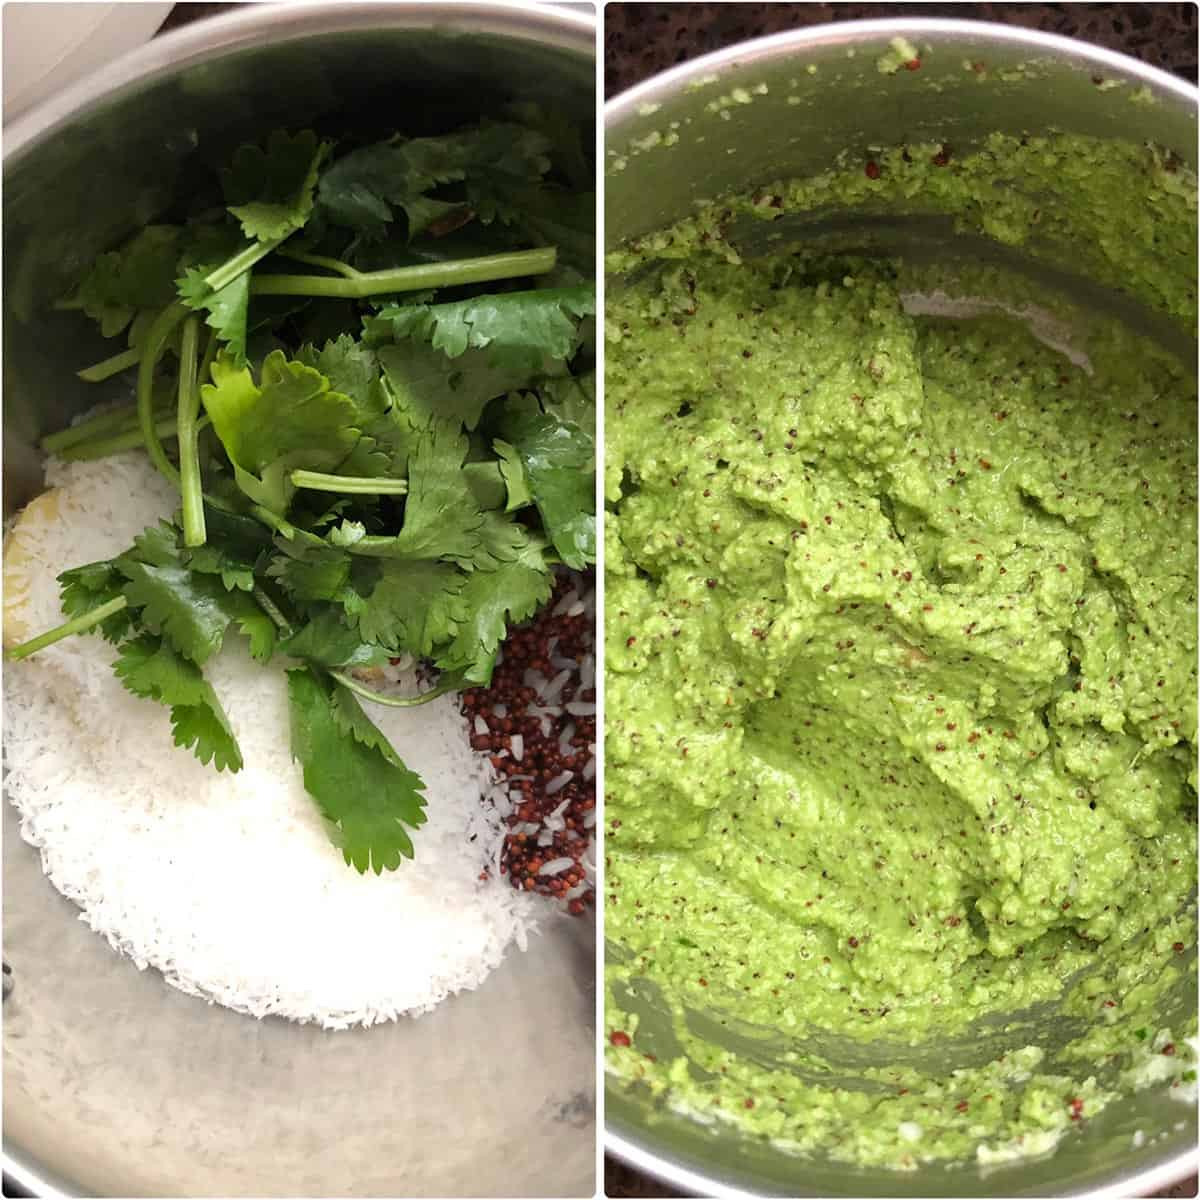 side by side photos of before and after grinding the spice paste ingredients